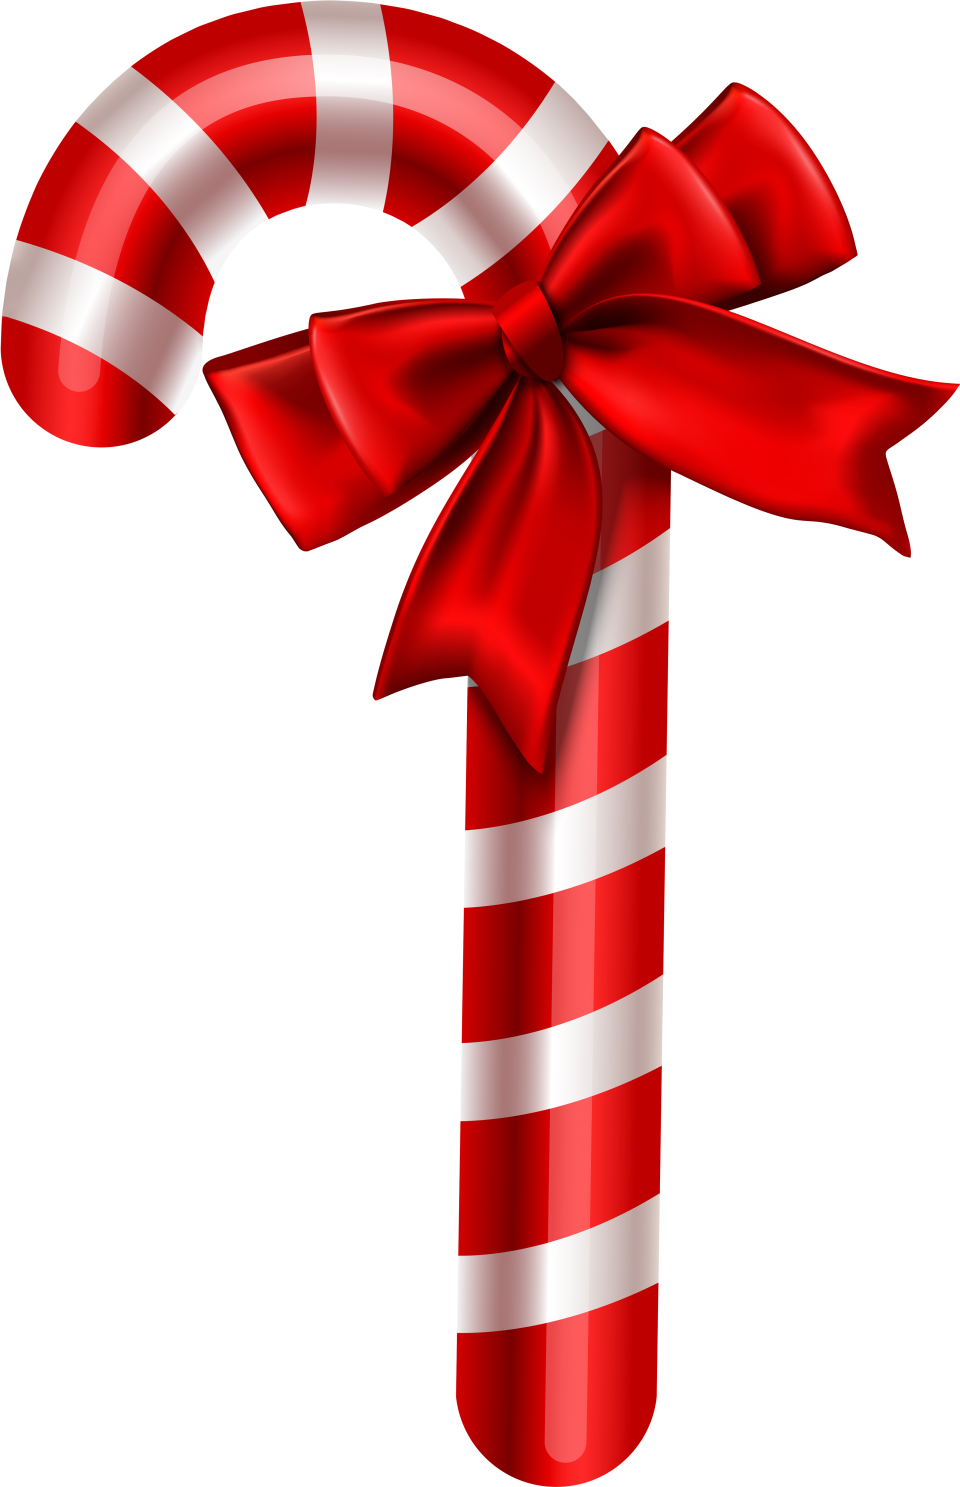 Red White Striped Christmas Candy PNG Image